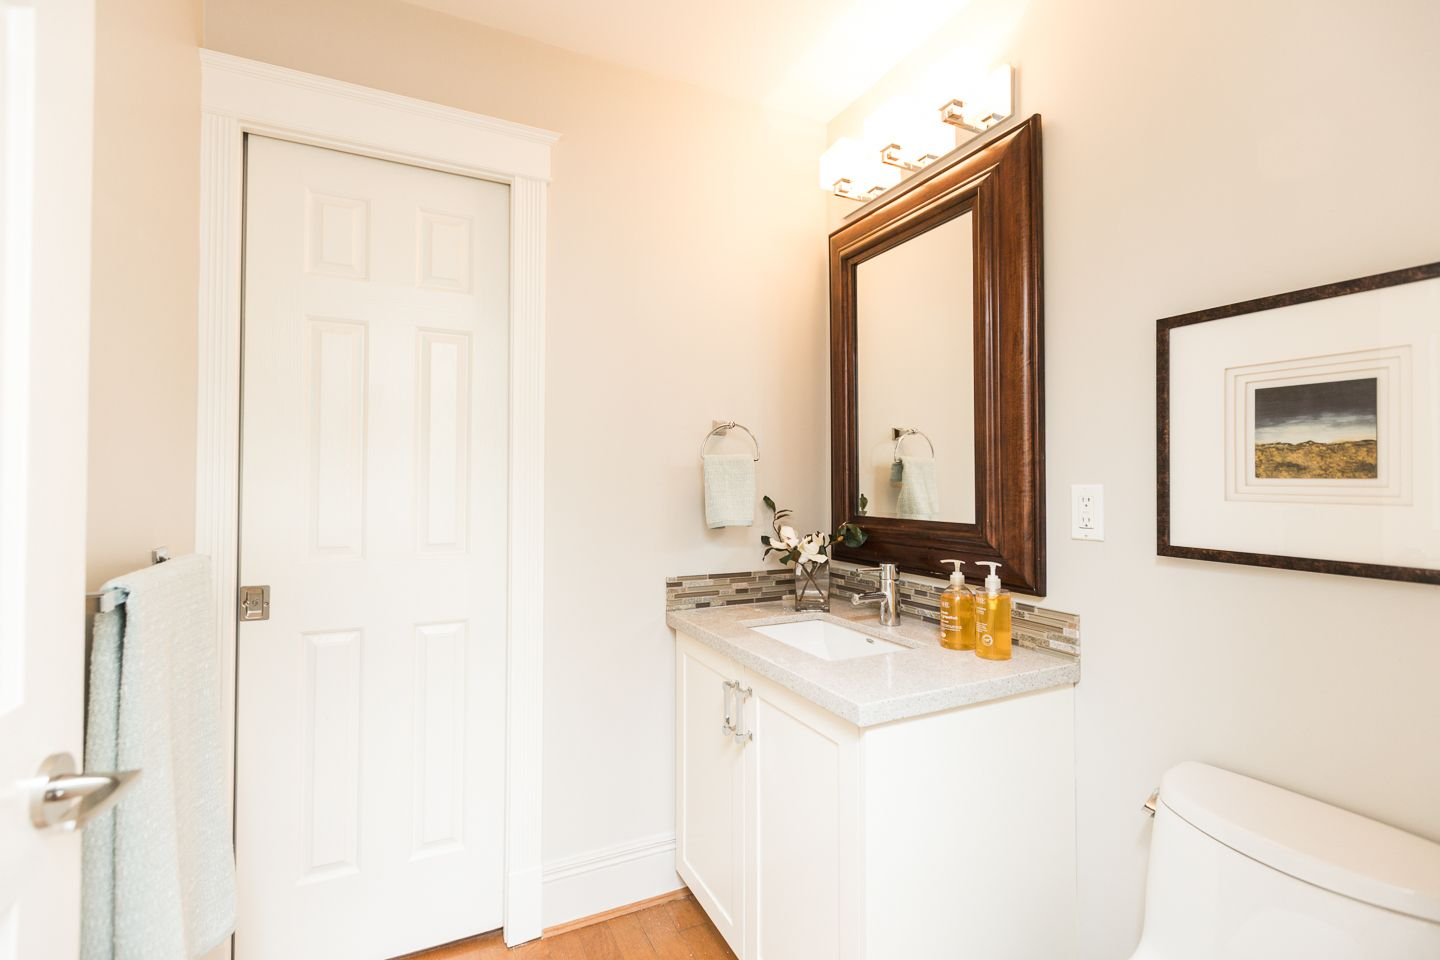 Photo 11: Photos: 2267 WEST 13TH AV in VANCOUVER: Kitsilano 1/2 Duplex for sale (Vancouver West)  : MLS®# R2407976